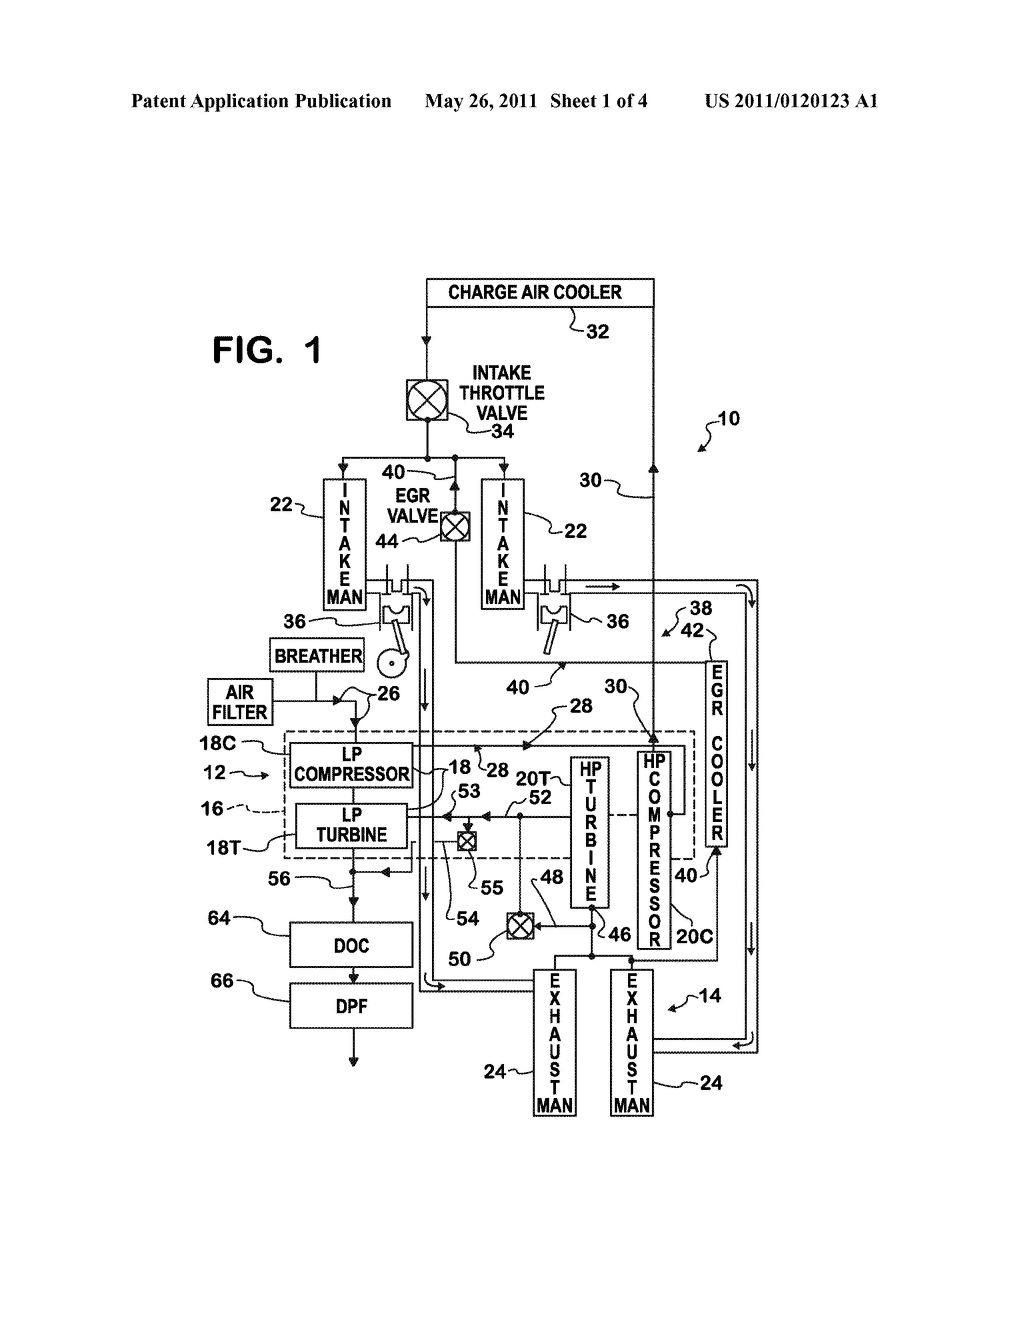 Low Pressure Turbine Waste Gate For Diesel Engine Having Two Stage Mtd Diagram Turbocharger Schematic And Image 02